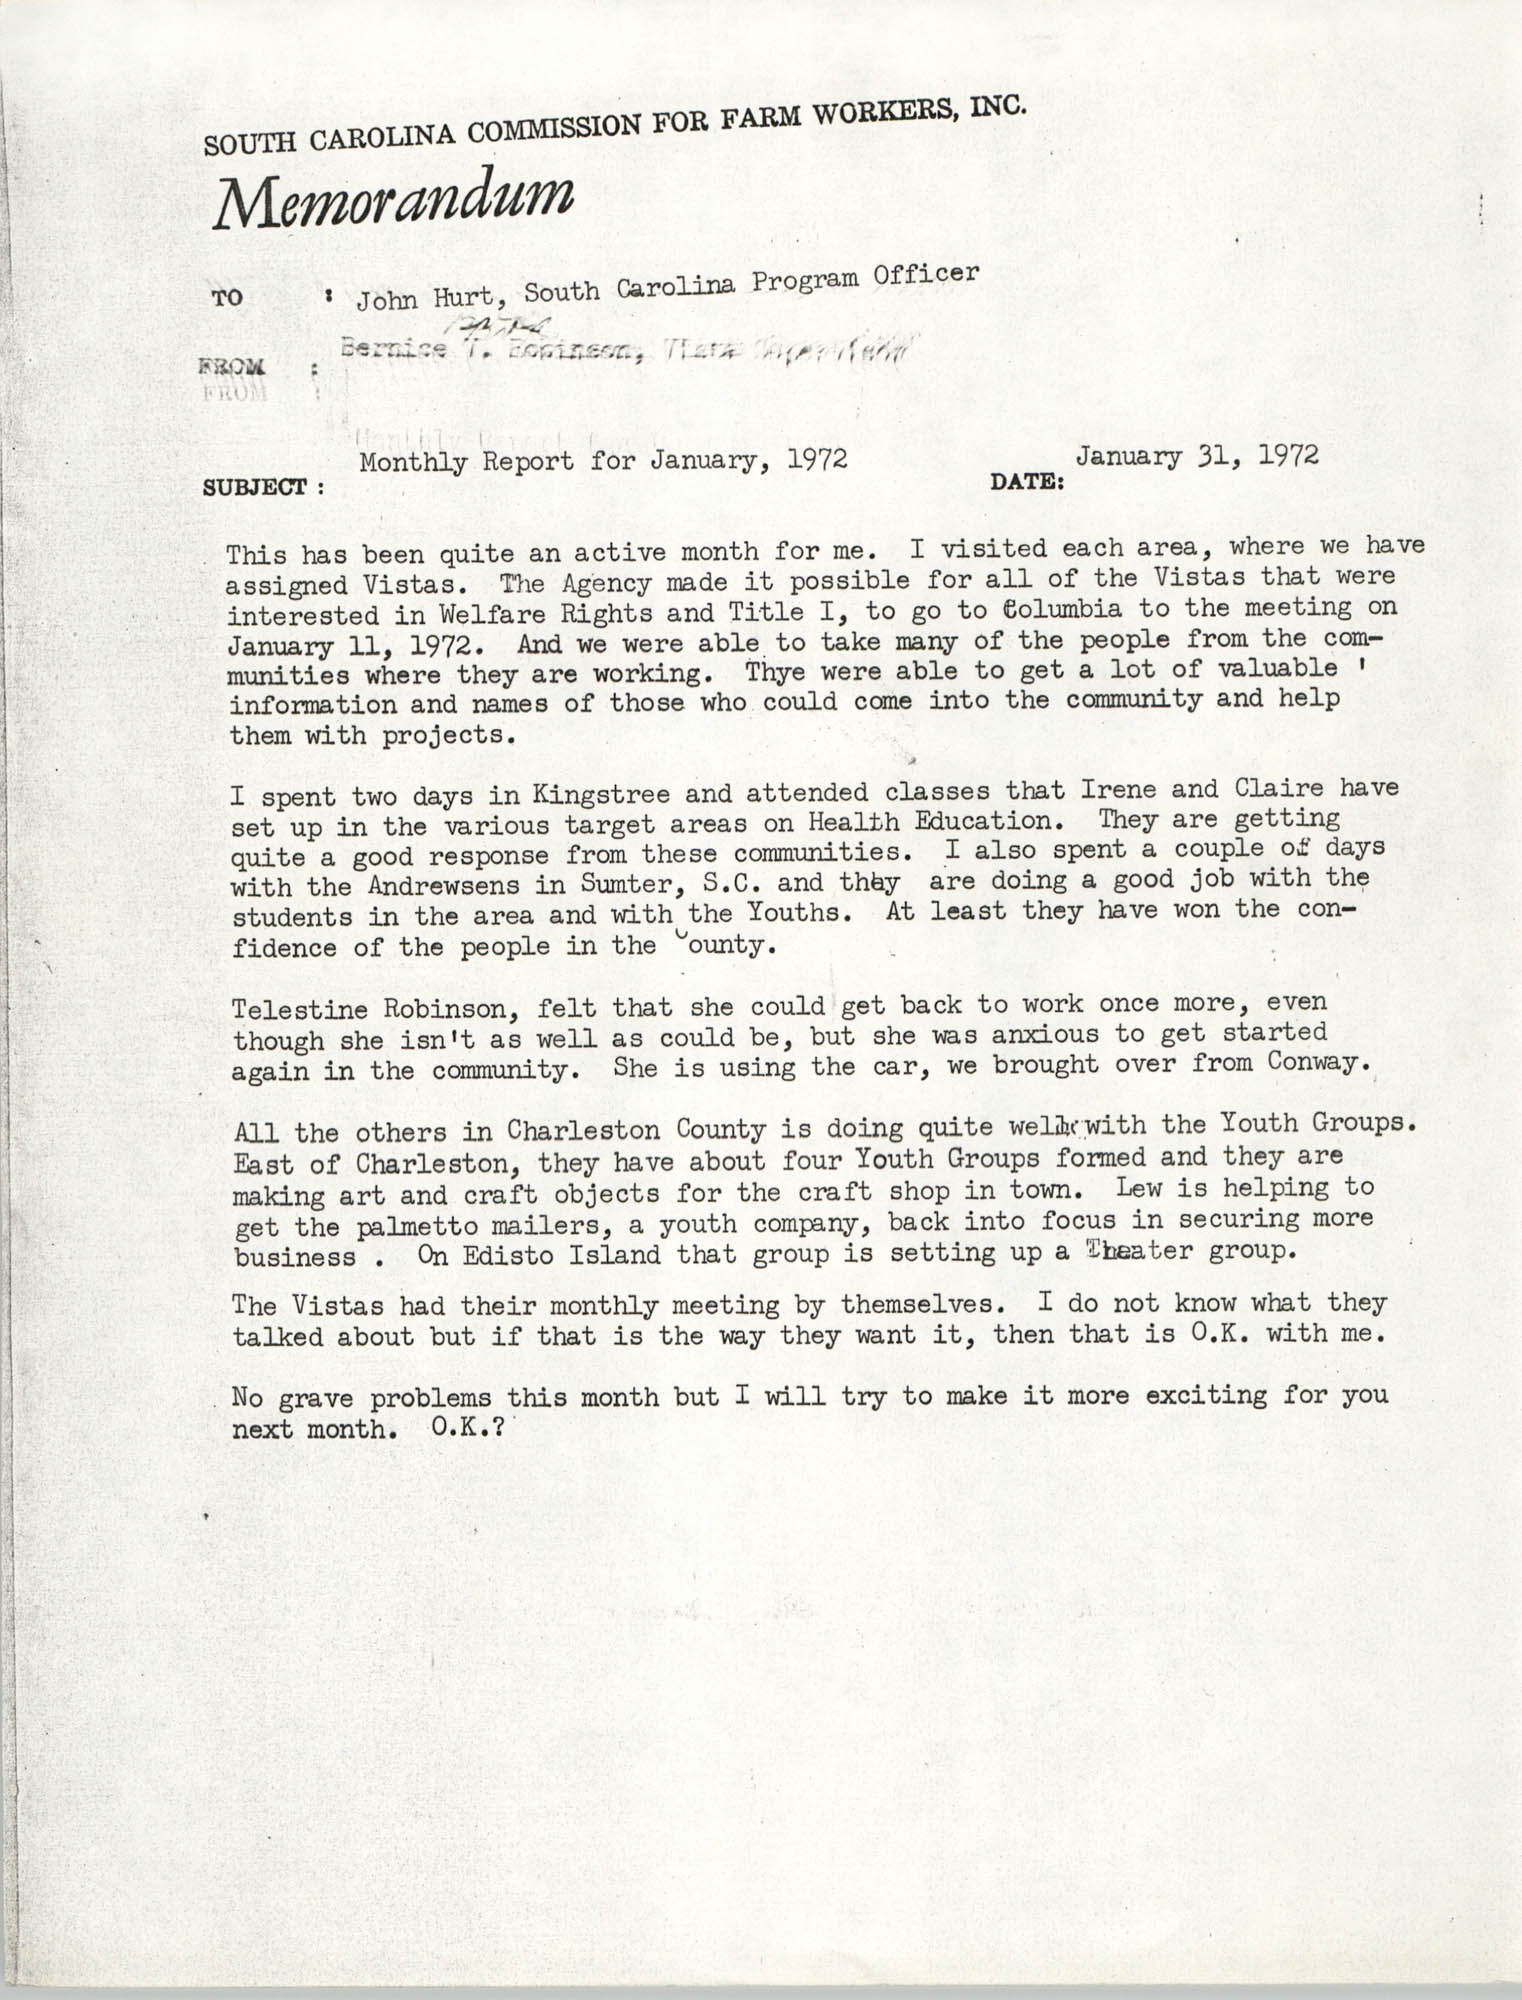 Memorandum from Bernice V. Robinson to John Hurt, January 1972